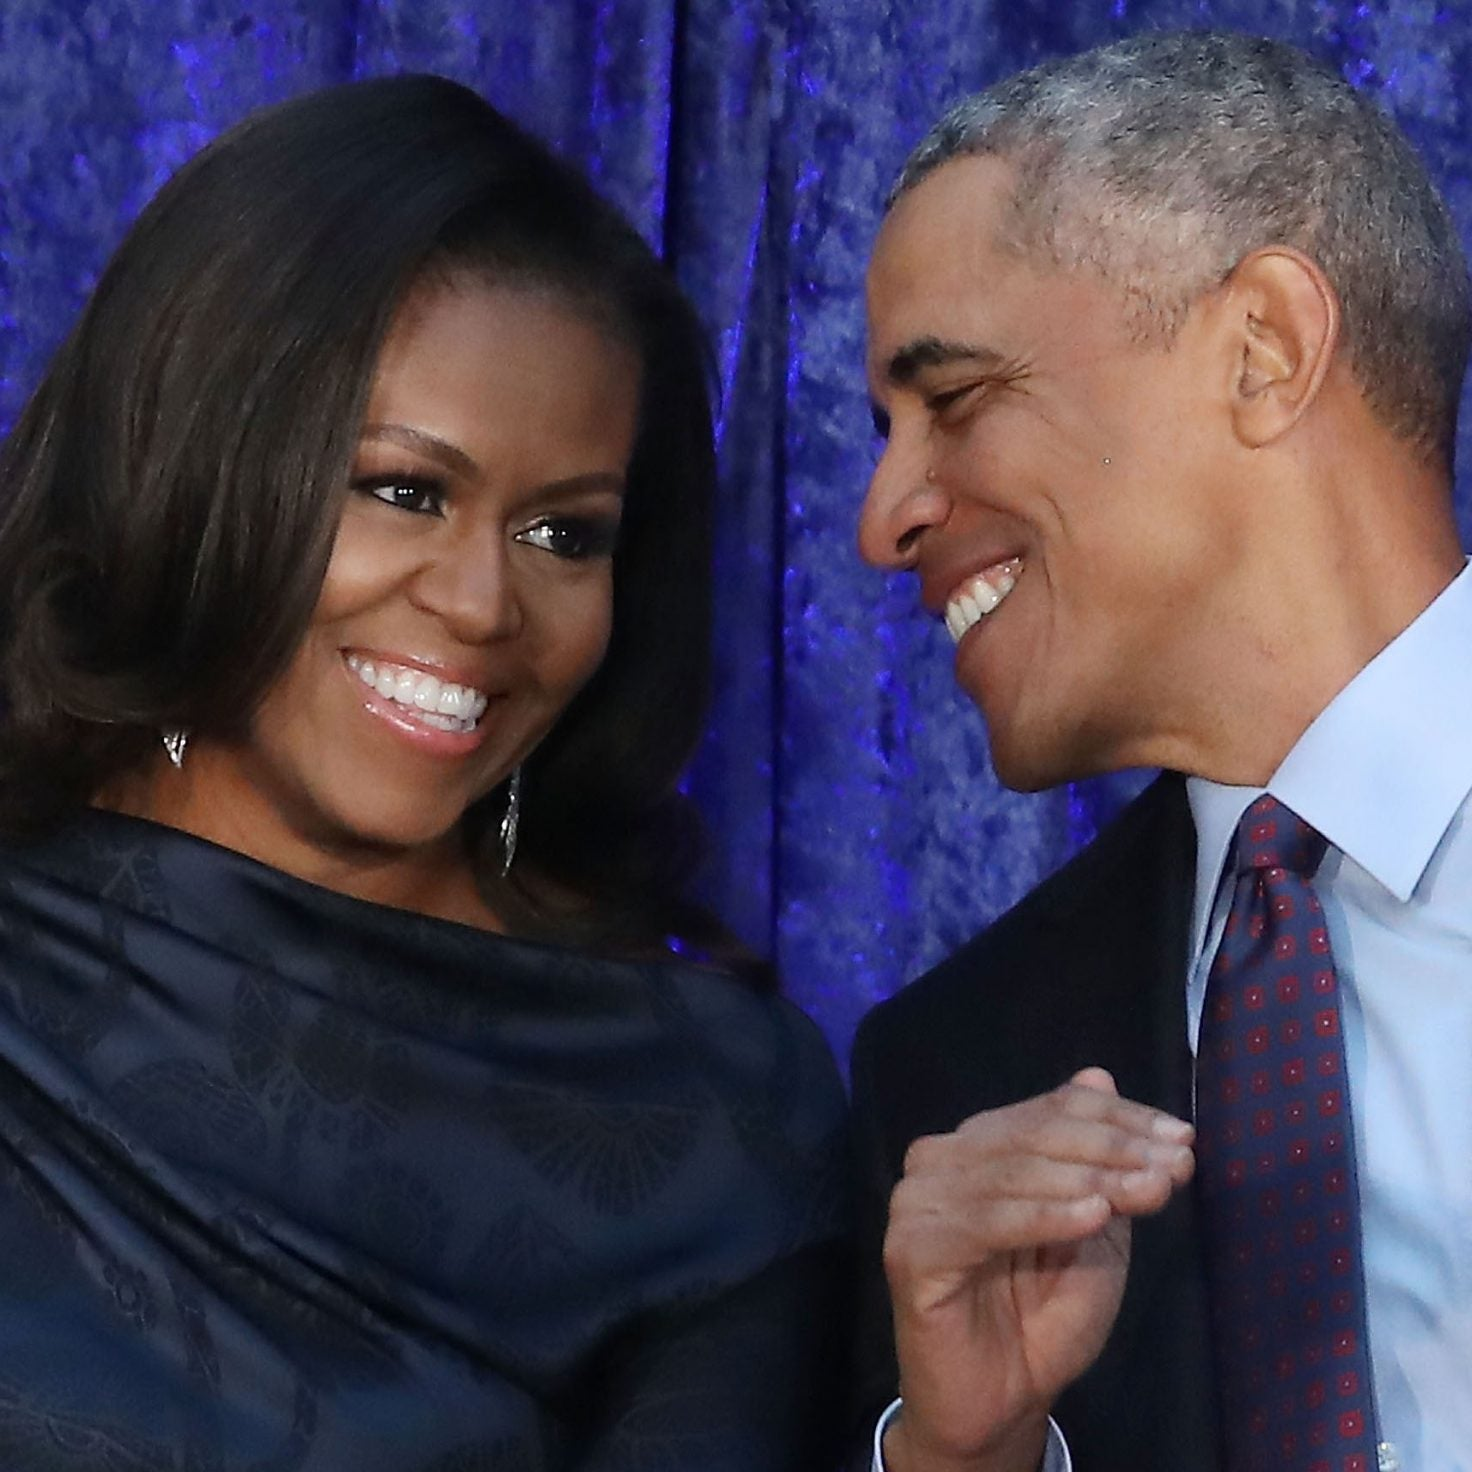 Barack Obama's Birthday Message To Michelle Obama Will Make You Melt